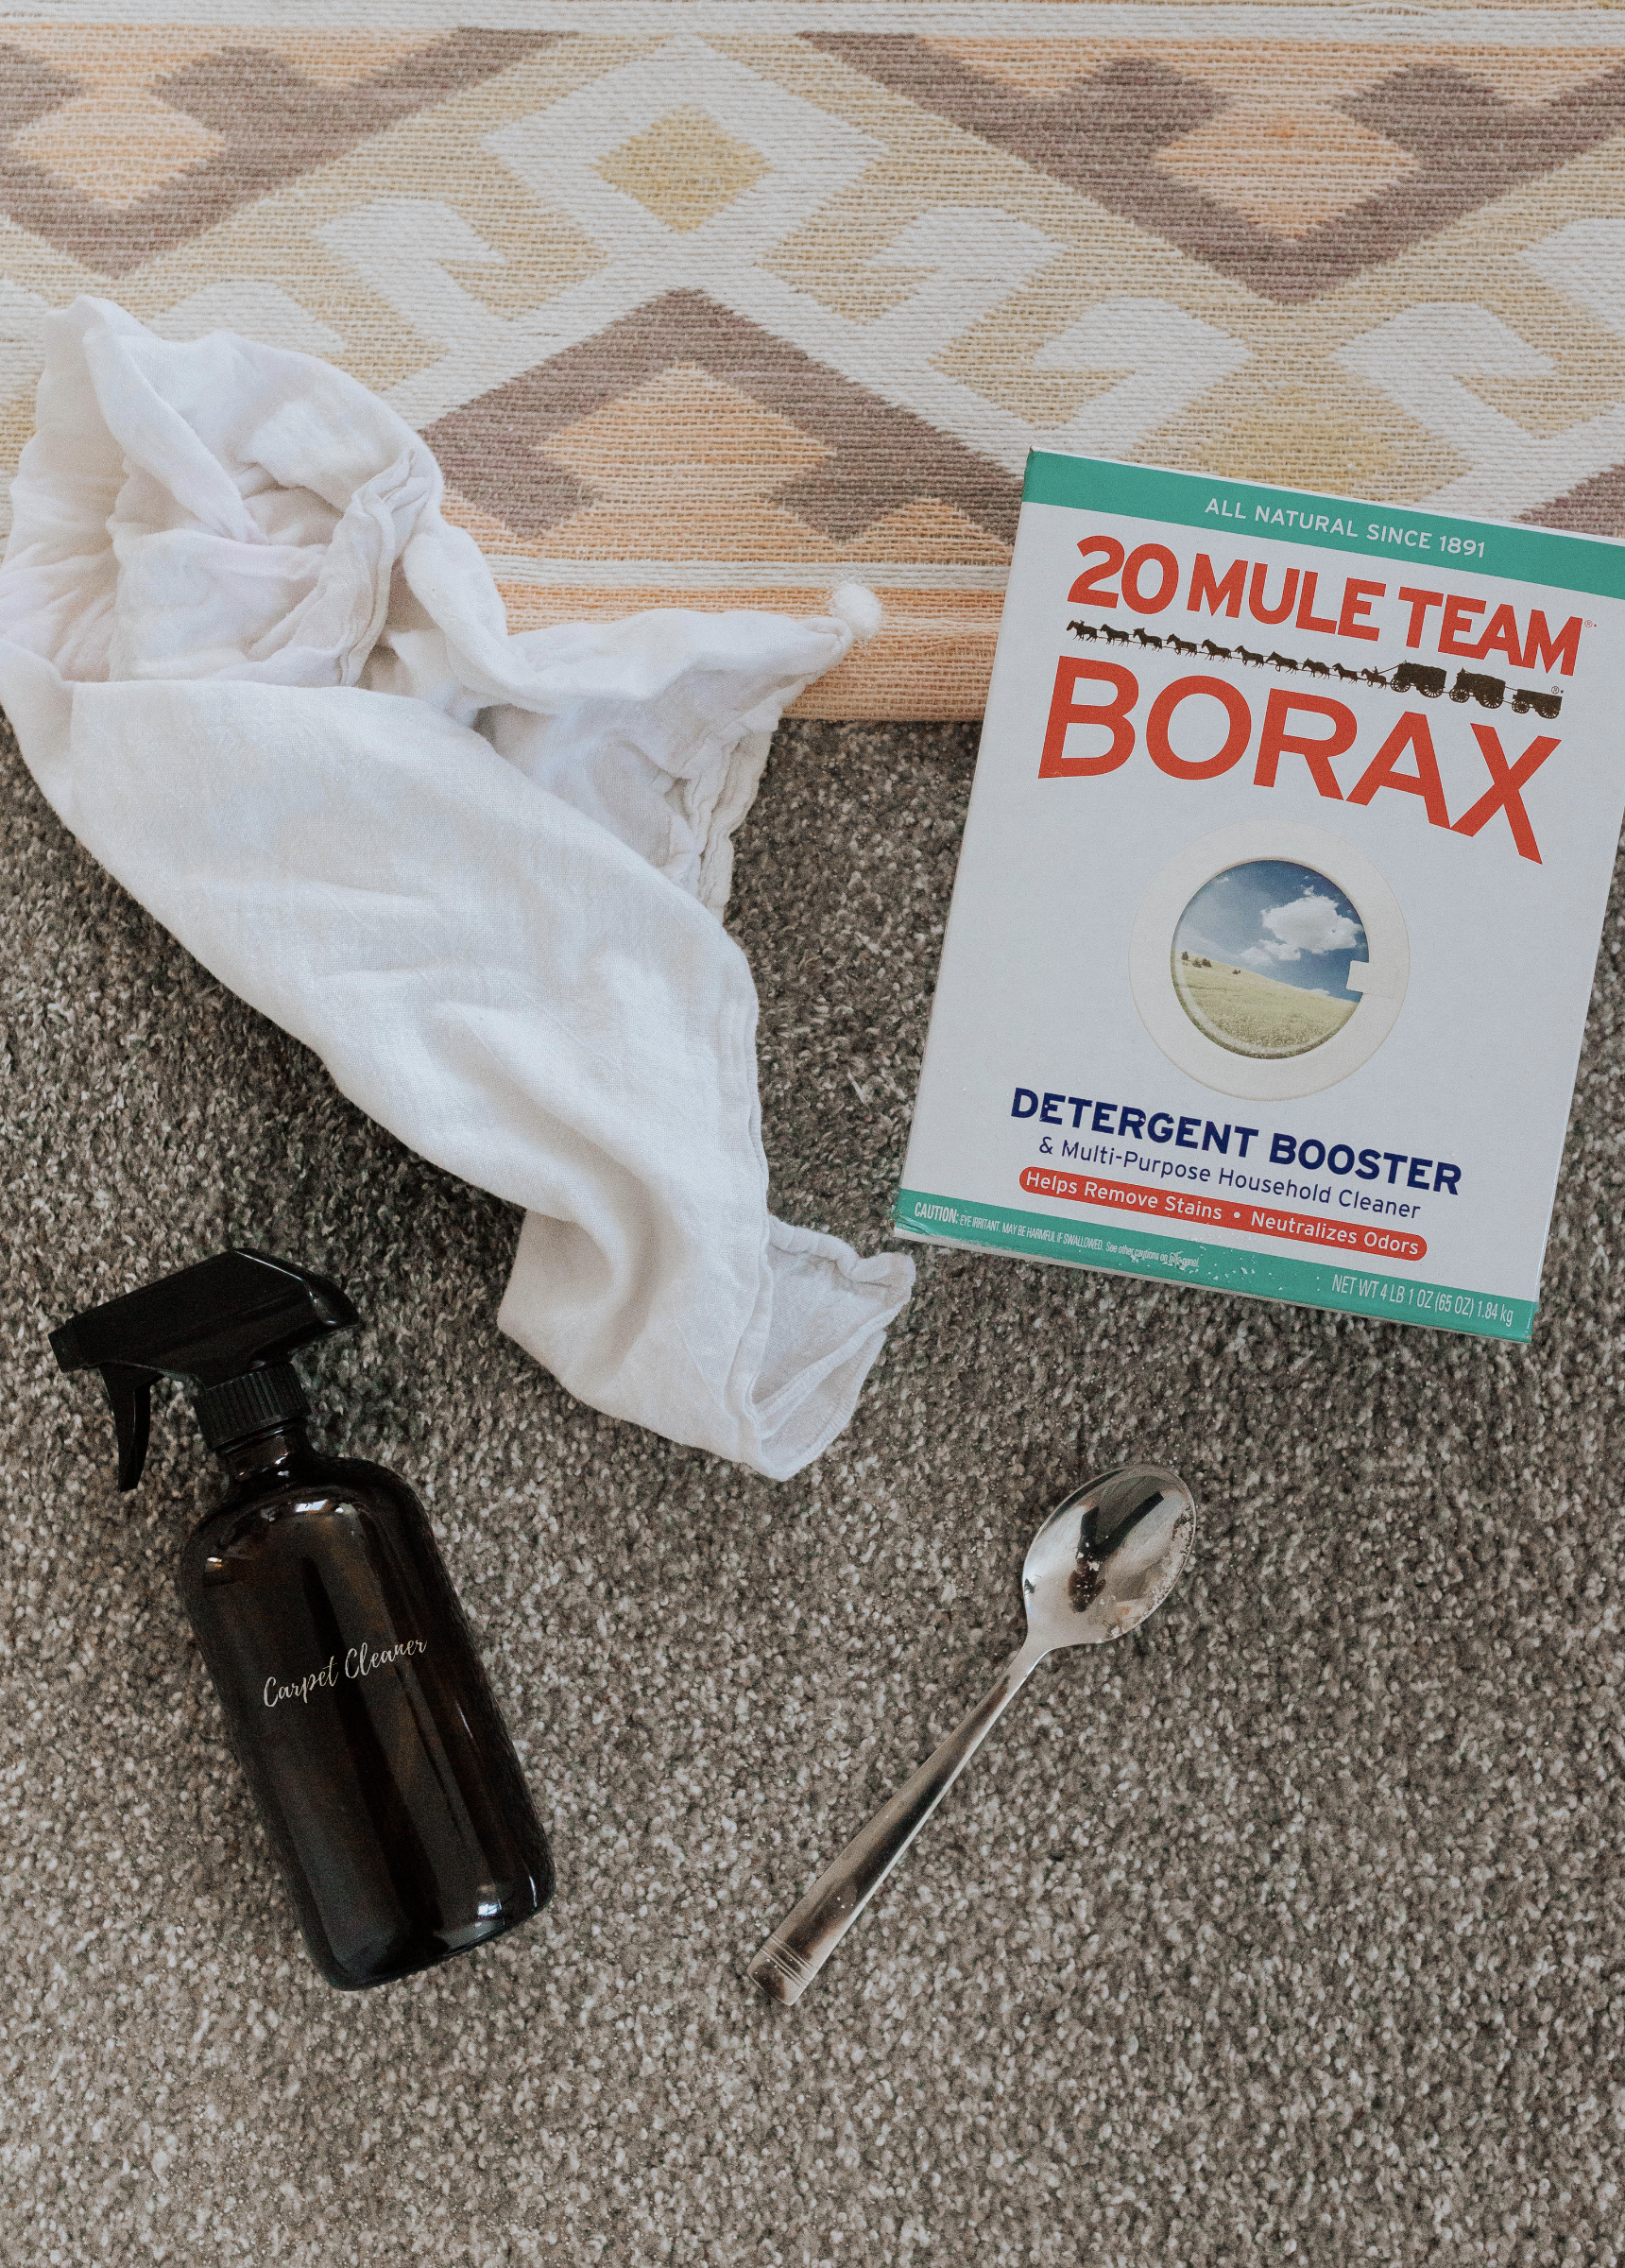 This One Stop Cleaner You Need In Your House Multi Purpose And Effective Boostlikeaboss Boraxpartner In 2020 Detergent Booster How To Clean Carpet Neutralize Odor